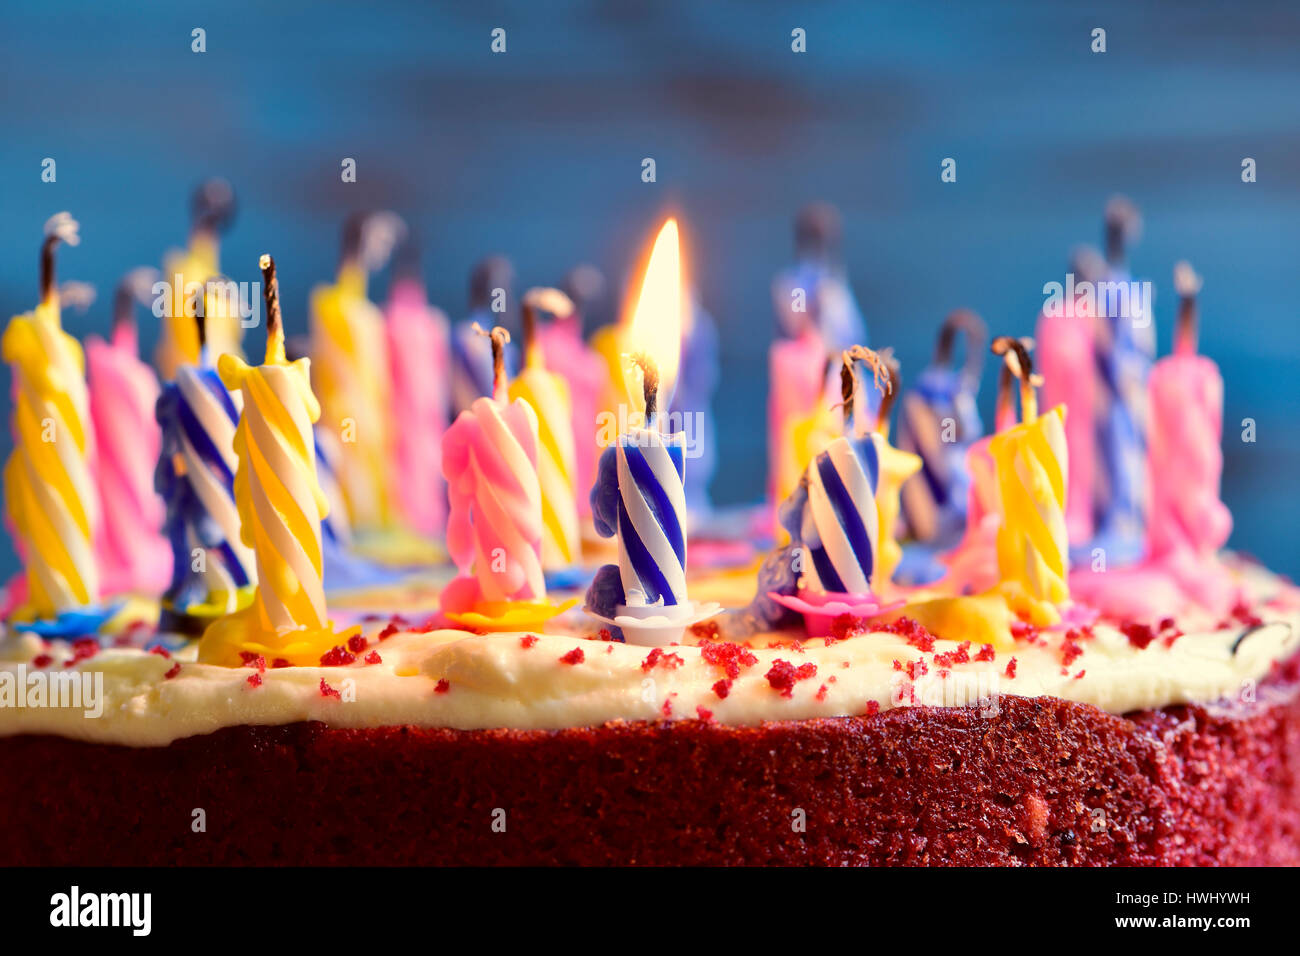 closeup of a cake with some unlit candles and just one lit candle after blowing out the cake - Stock Image